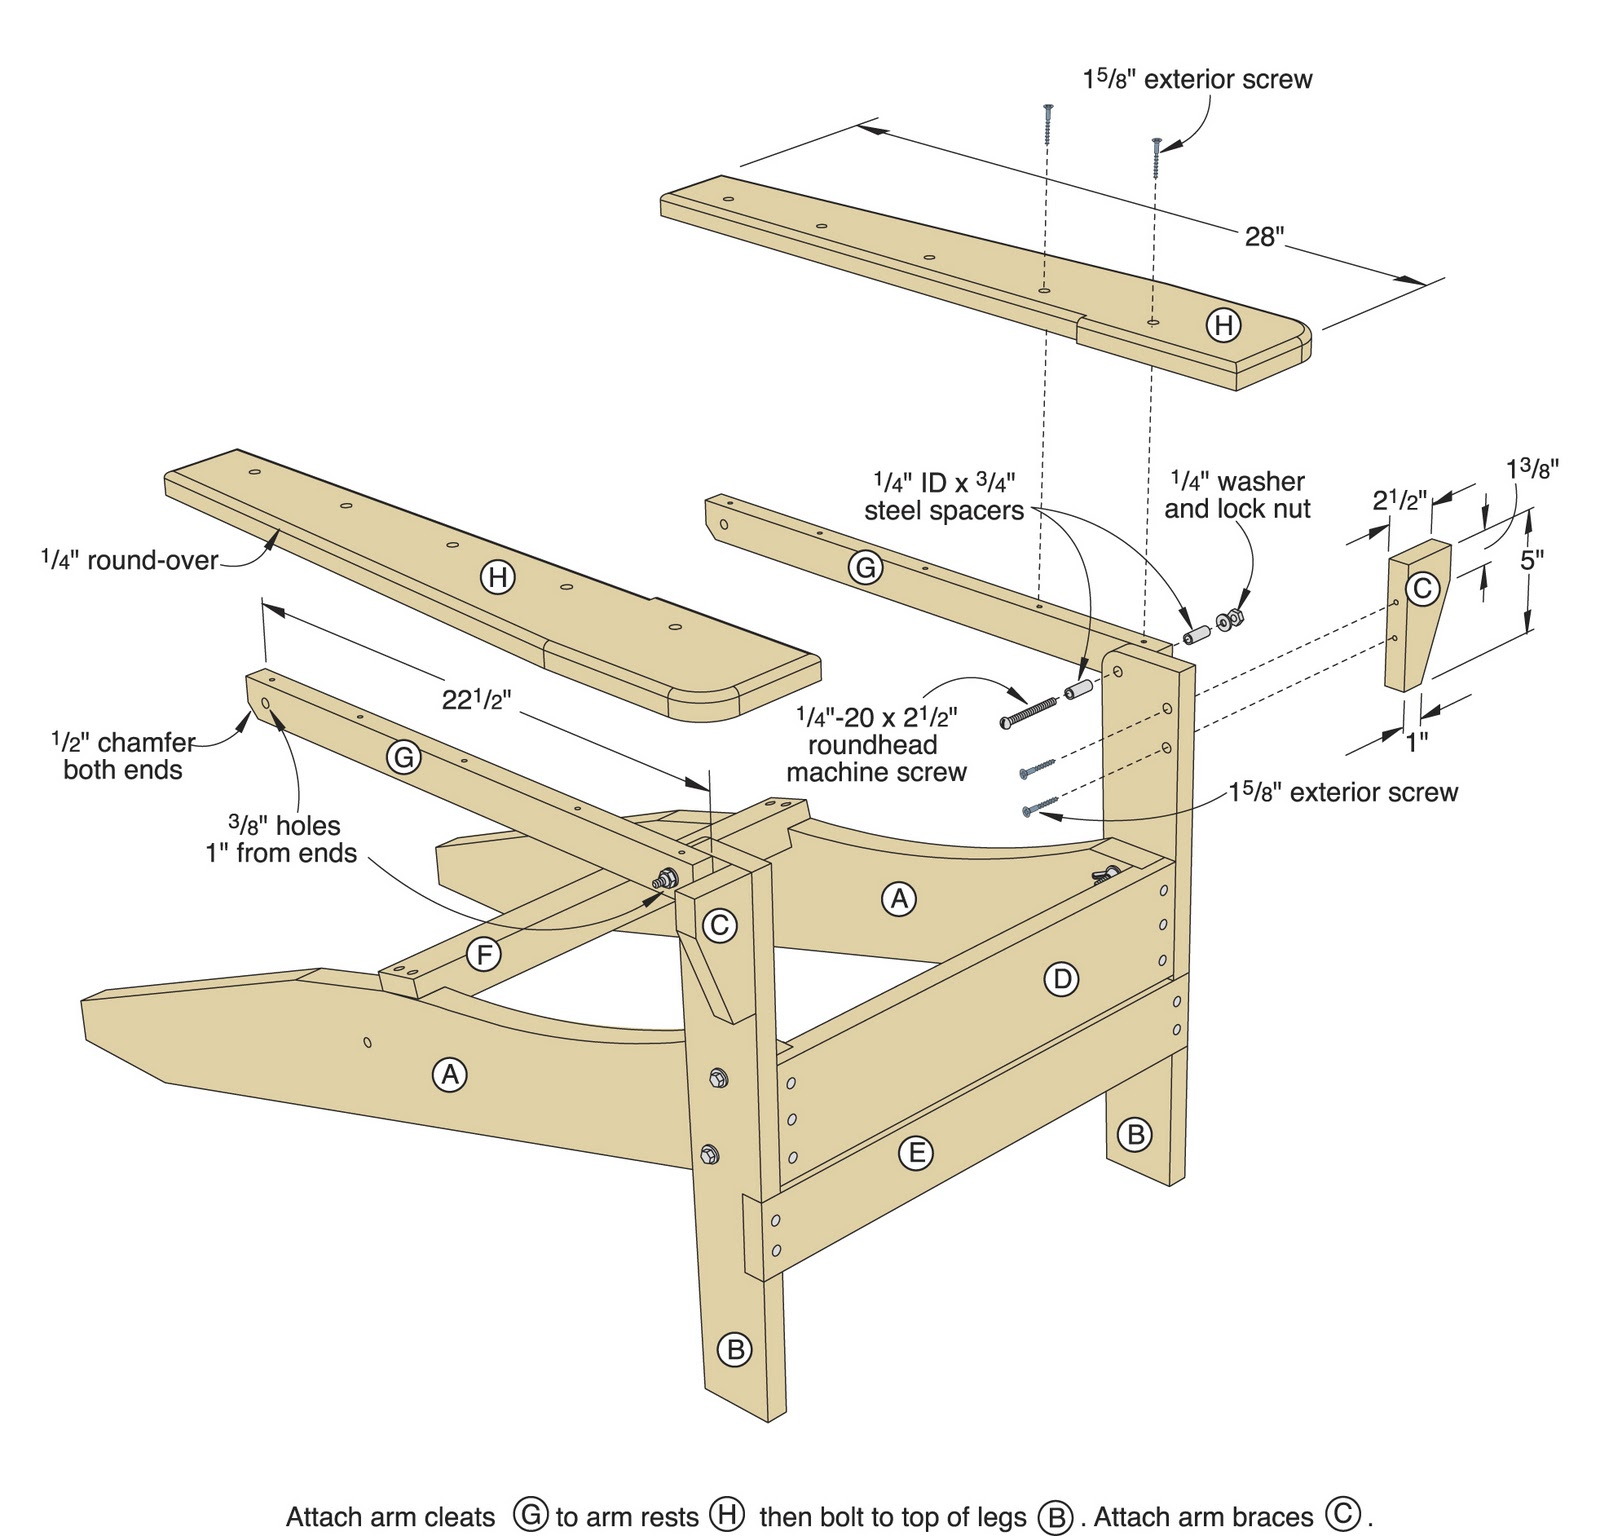 Wood Working Plans Shed Plans and more Folding Adirondack Chair